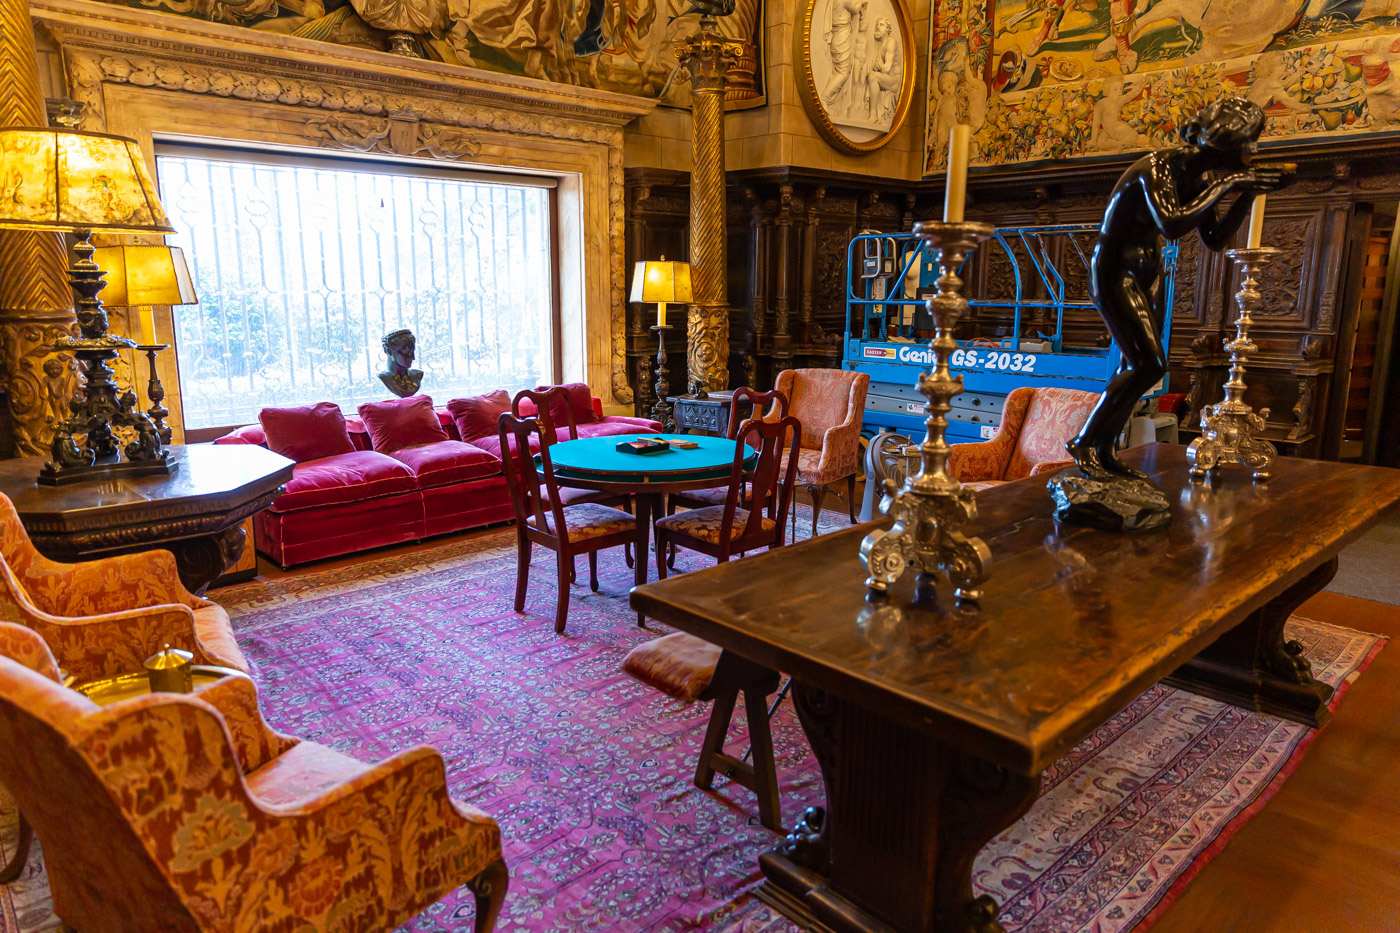 The Assembly Room, Grand Rooms Tour. Hearst Castle Tours